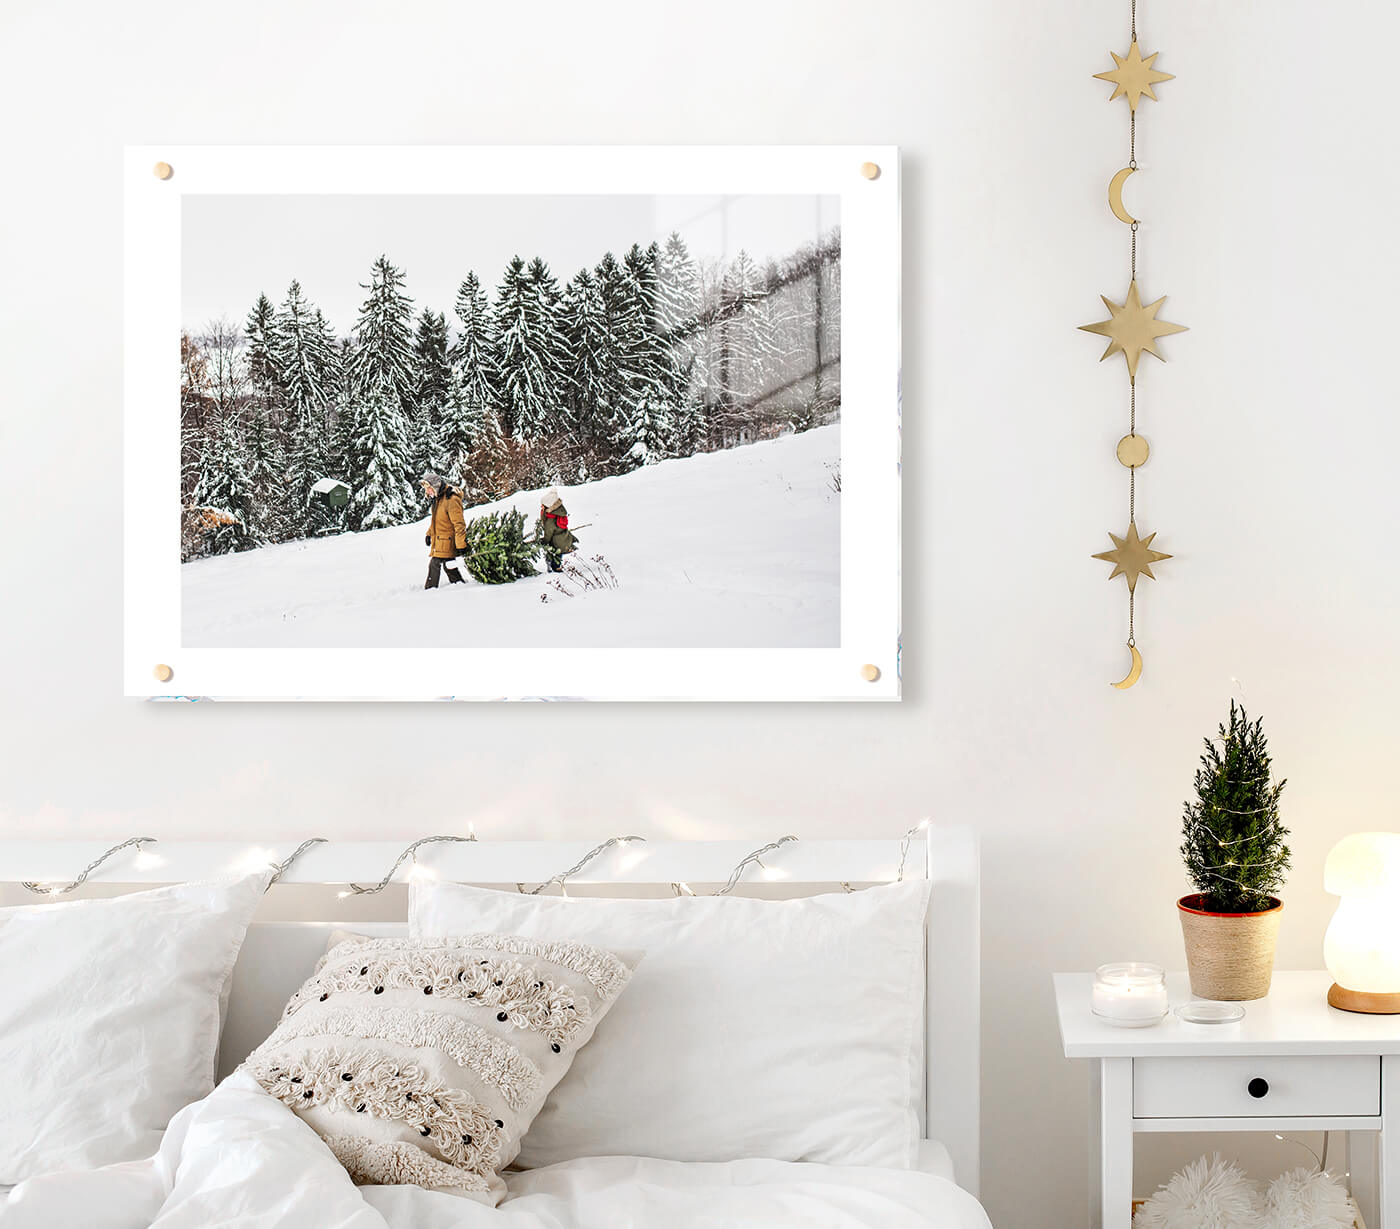 acrylic print manufactured by printique above a bed